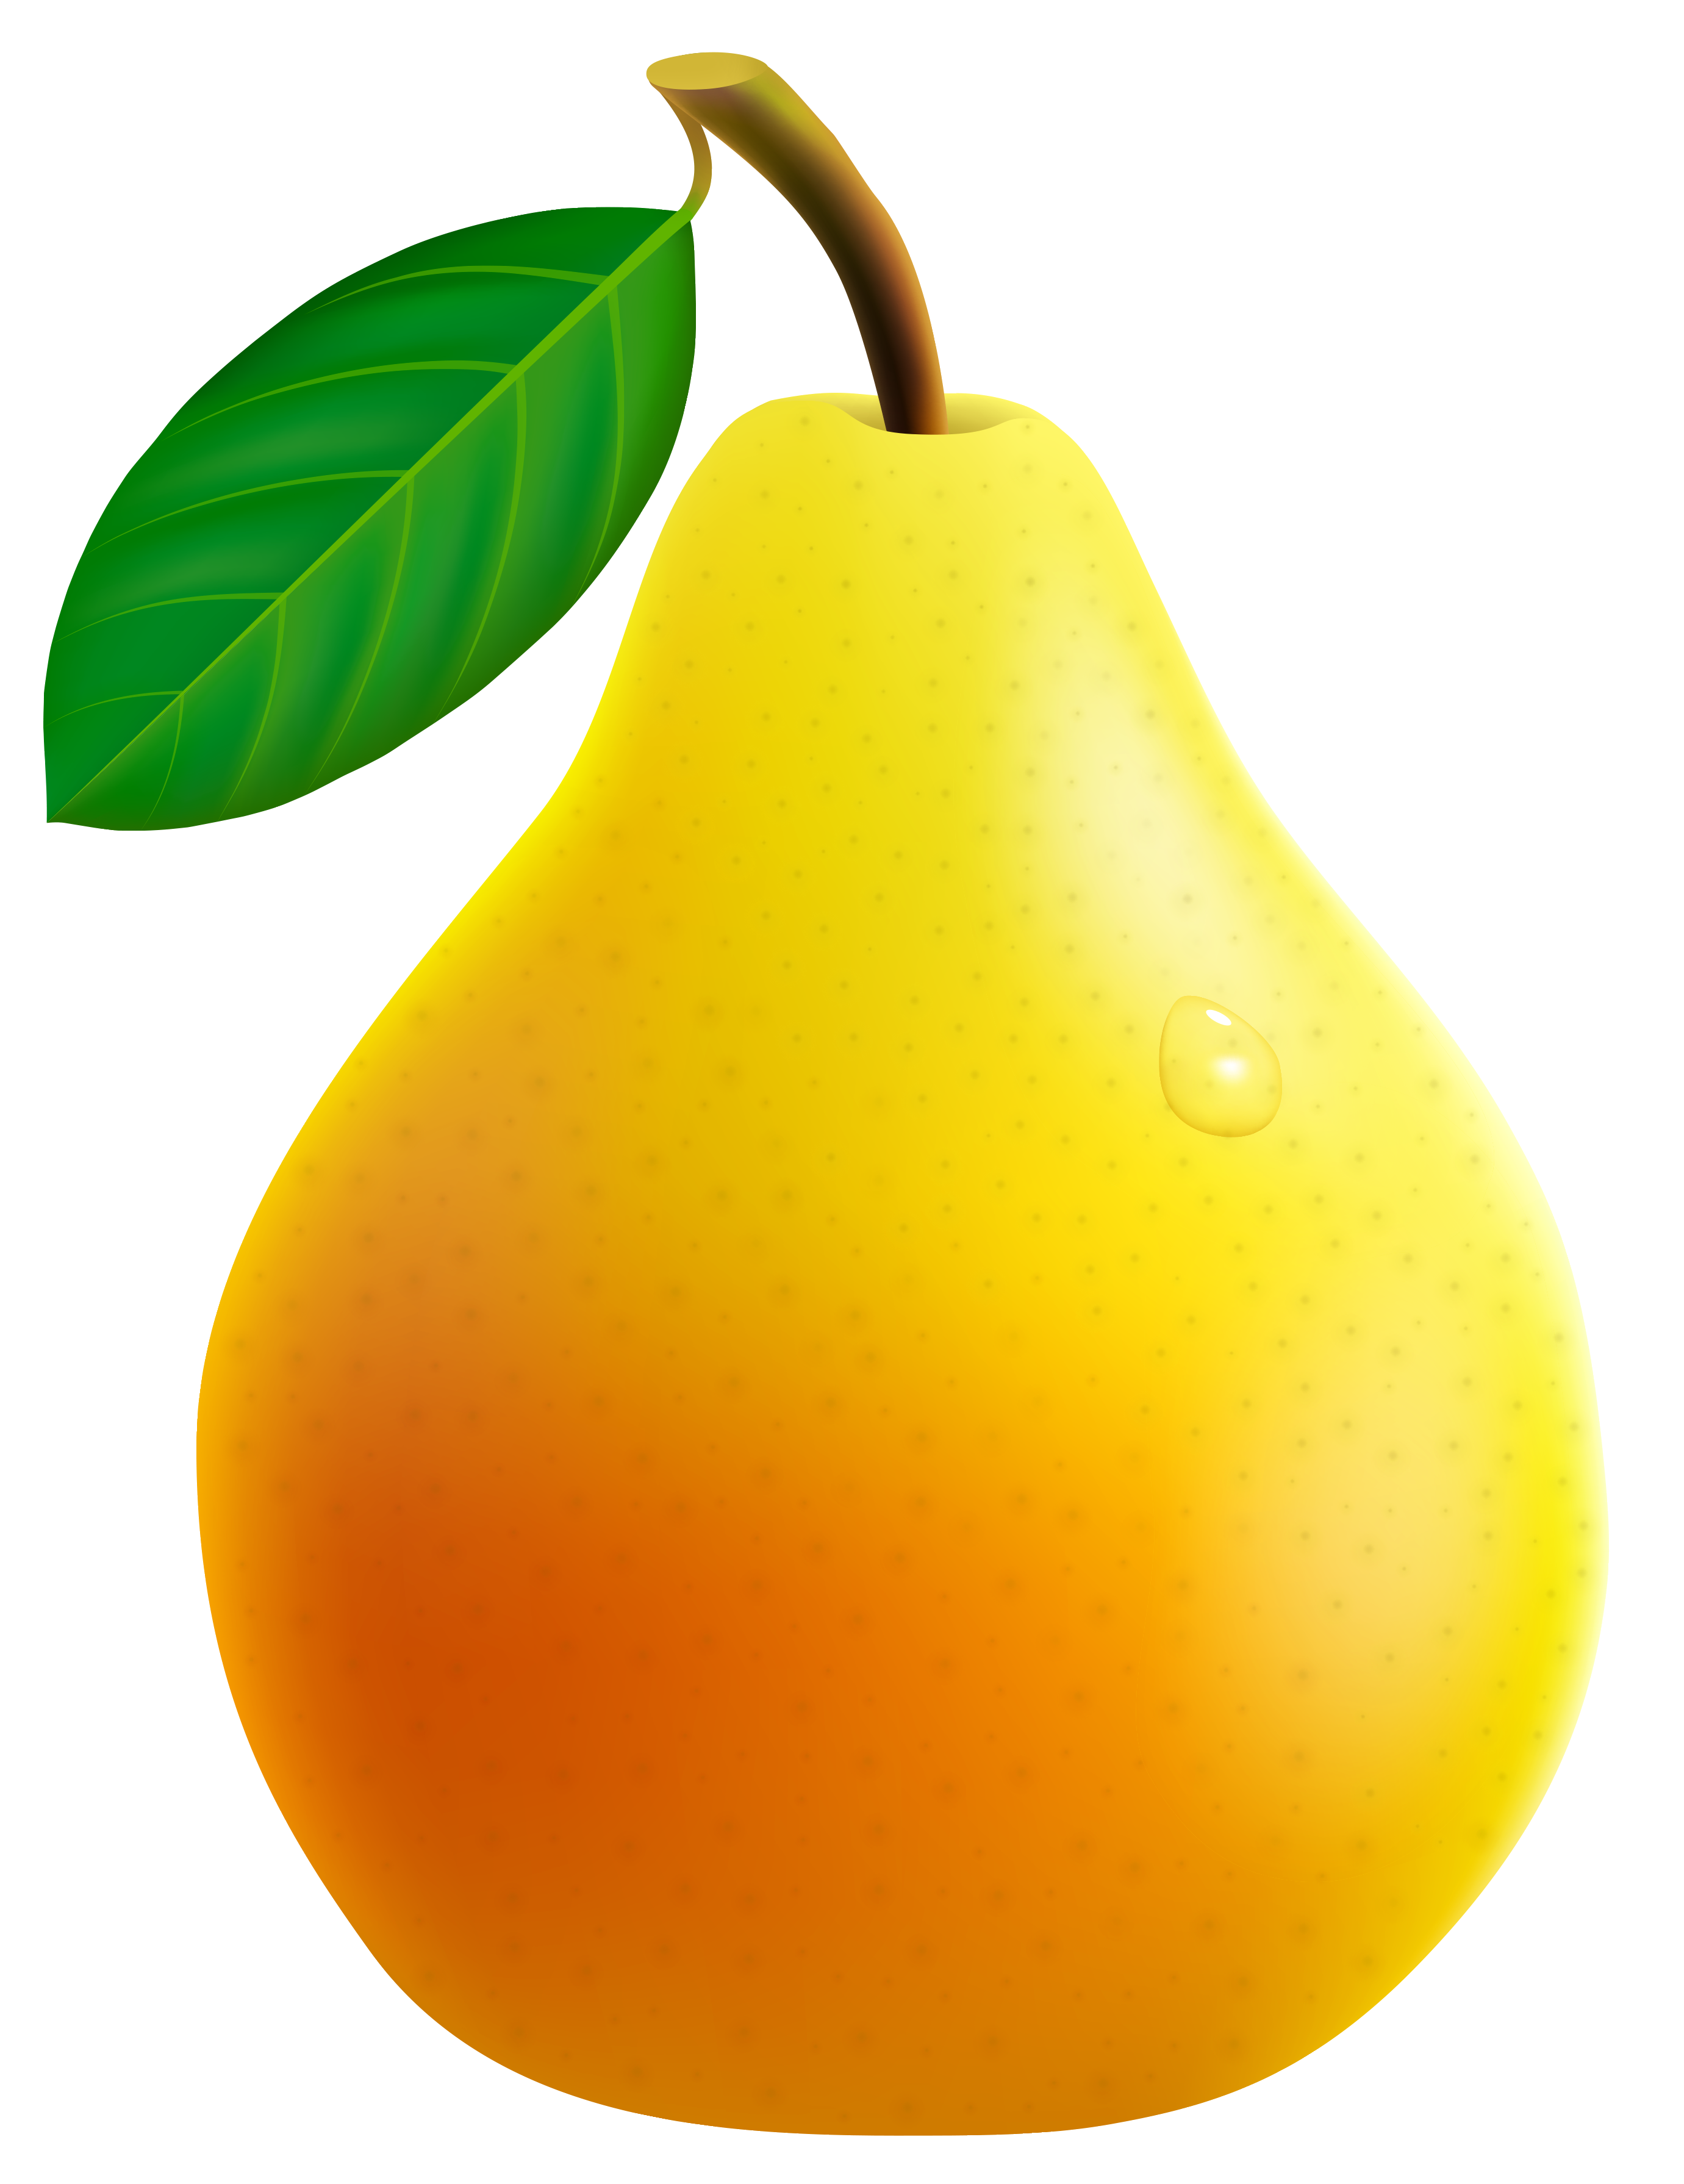 Yellow Pear PNG Vector Clipart Image.